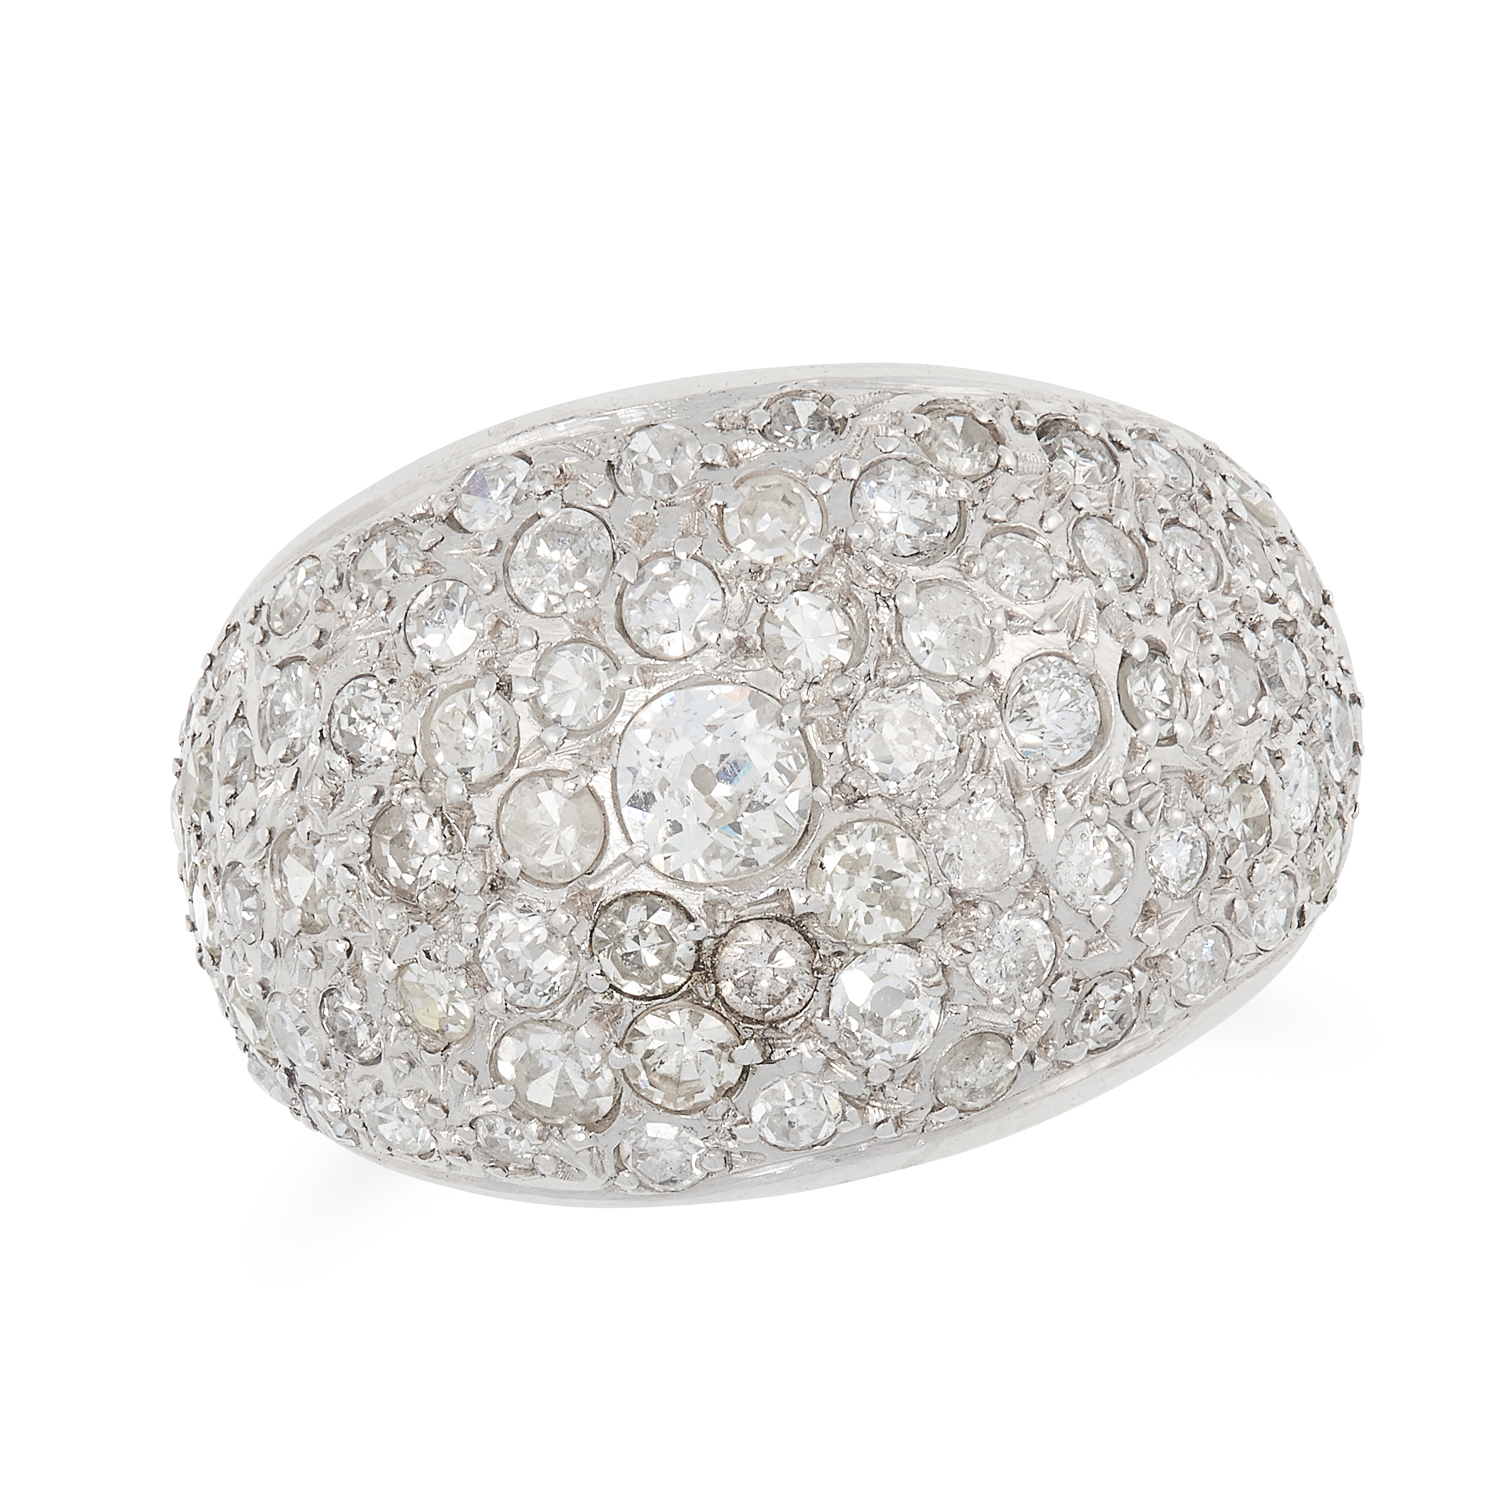 A DIAMOND BOMBE RING set with old and round cut diamonds, size O / 7, 9.4g.